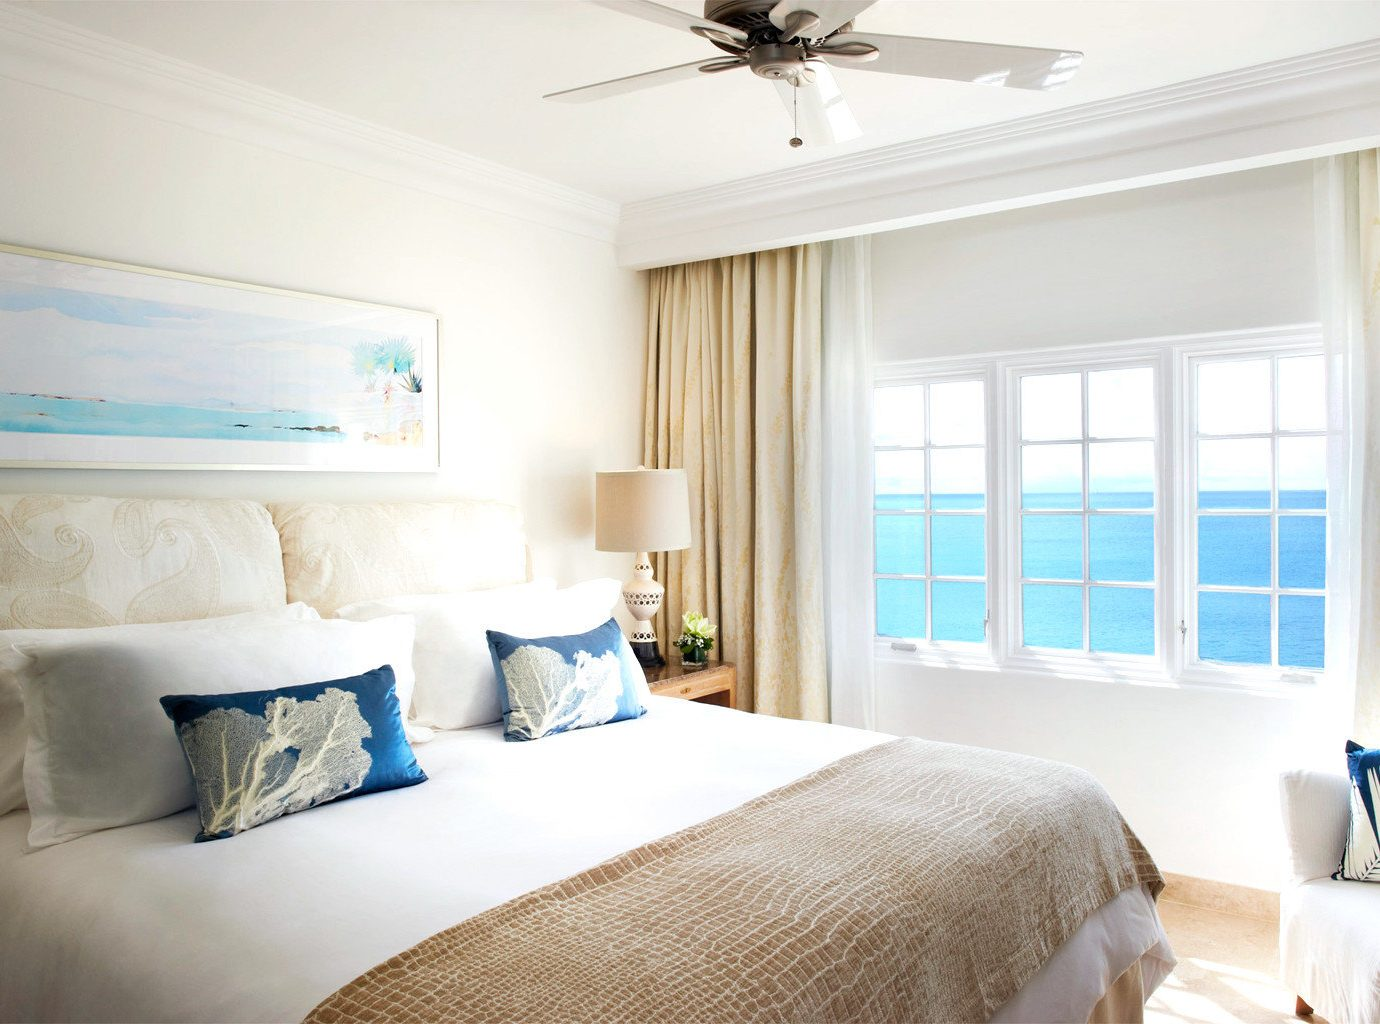 Beachfront Bedroom Family Luxury Modern Resort Trip Ideas indoor bed sofa window wall room ceiling hotel property home living room estate interior design Suite real estate pillow cottage condominium apartment window covering furniture decorated flat